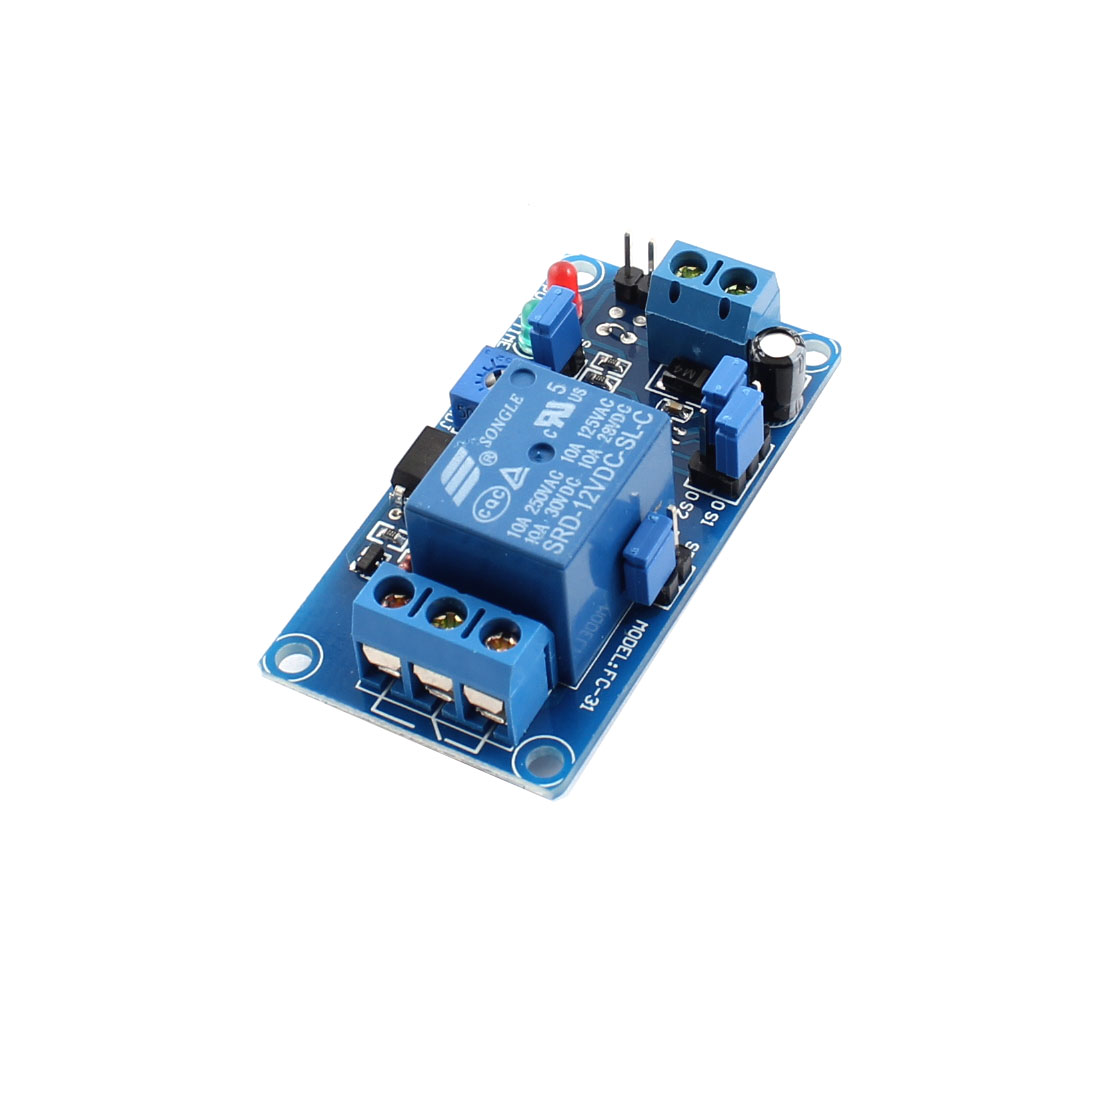 FC-31 Blue 1-Channel NO Triggered Time Delay Relay Switch Module PCB Board DC12V